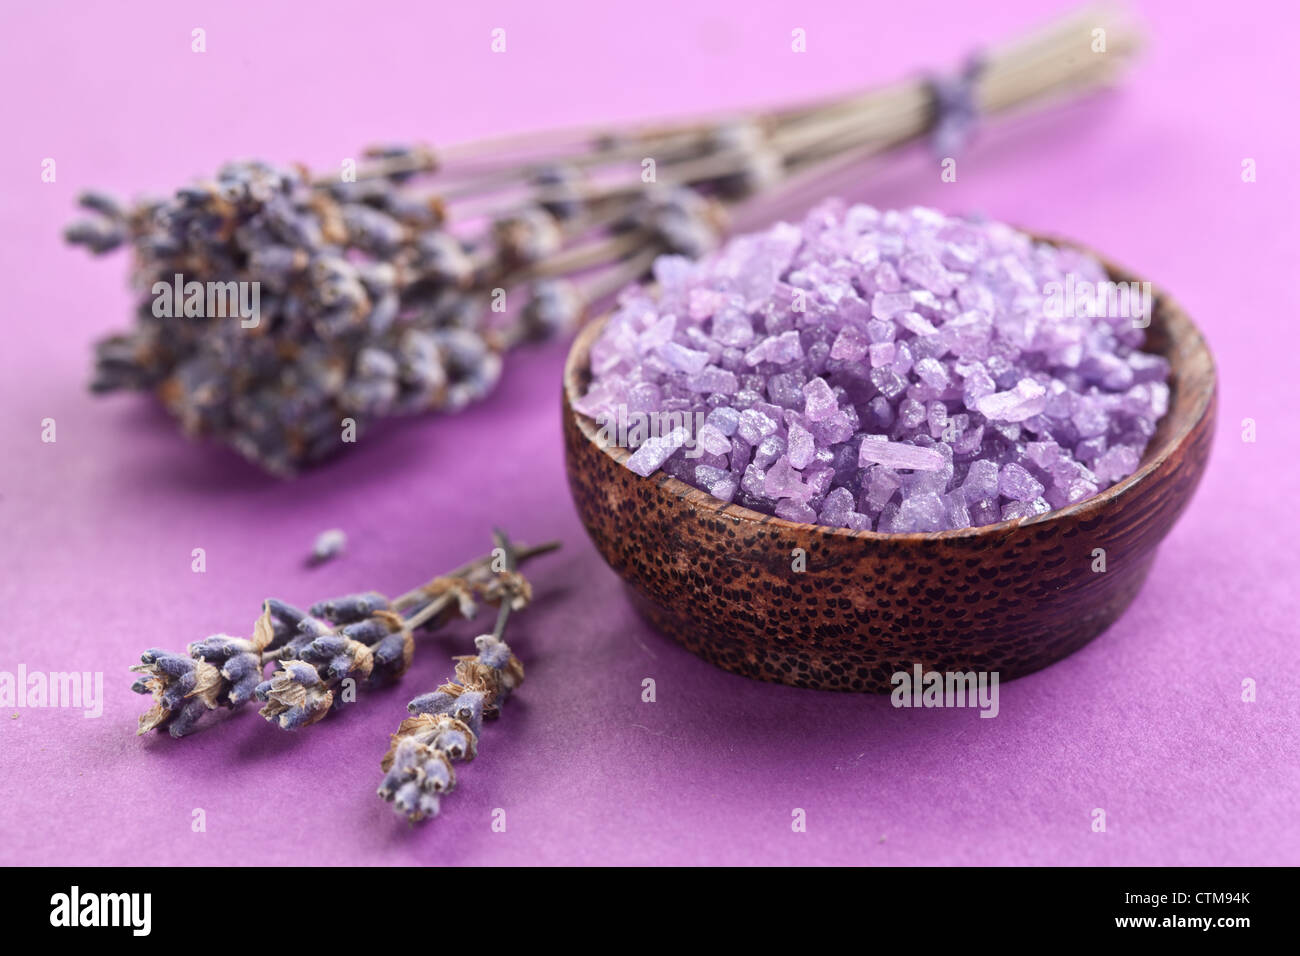 Sea-salt and dried lavender on a violet background. - Stock Image